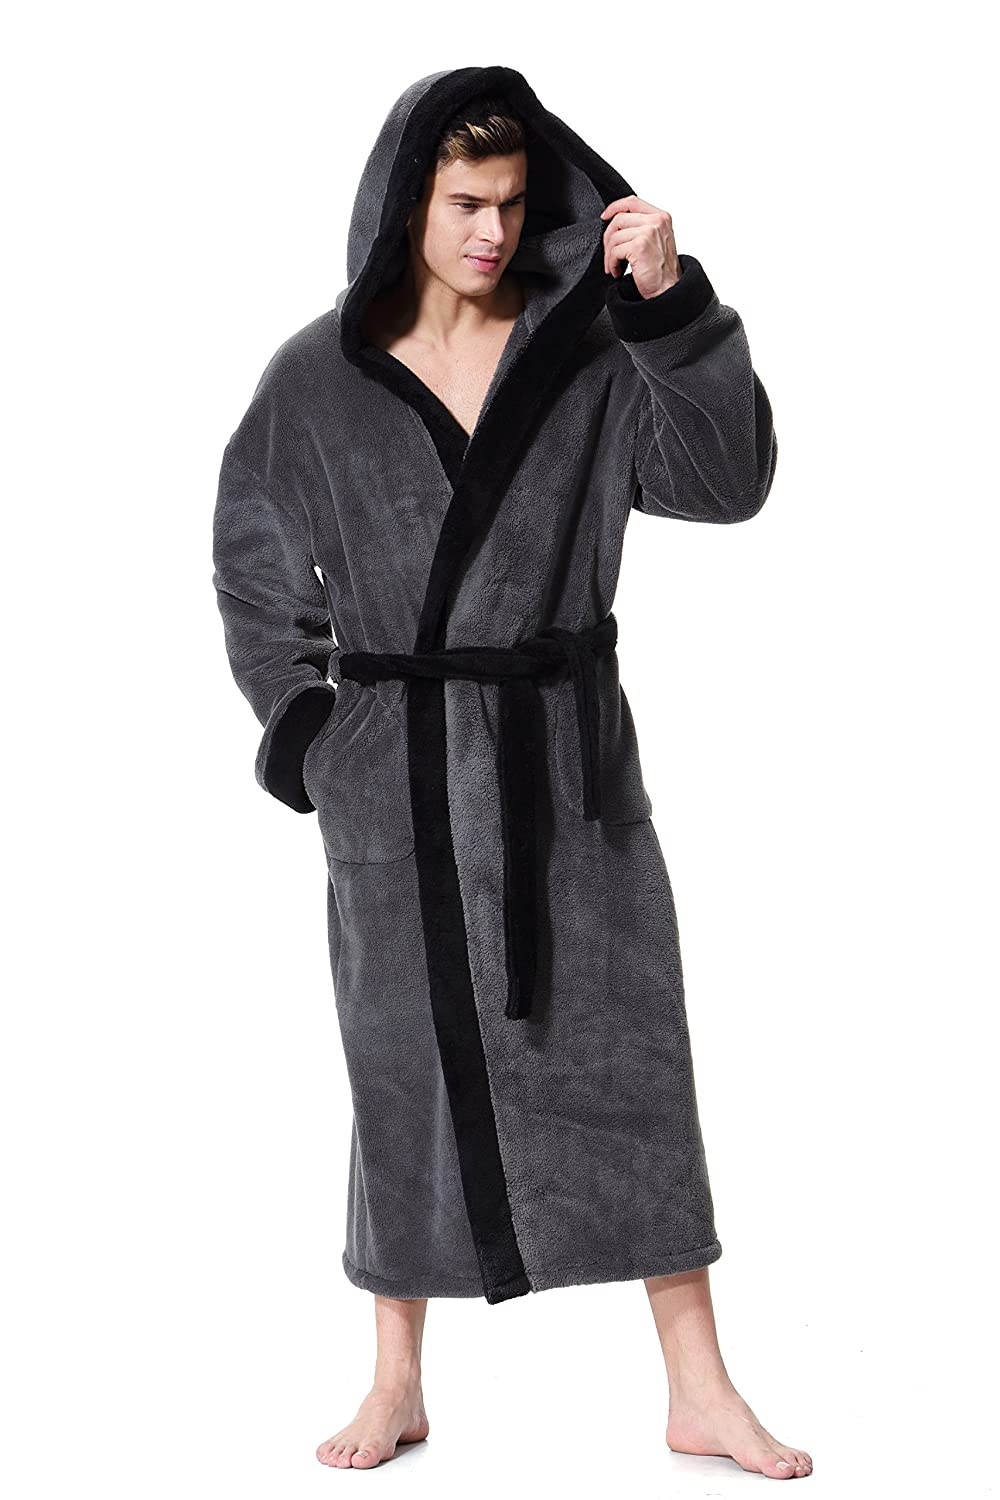 OUFANG Mens Hooded Bathrobe in 2 Colored Soft Spa Kimono Shawl Collar  Hooded Long Robe Unisex c4671f1dd